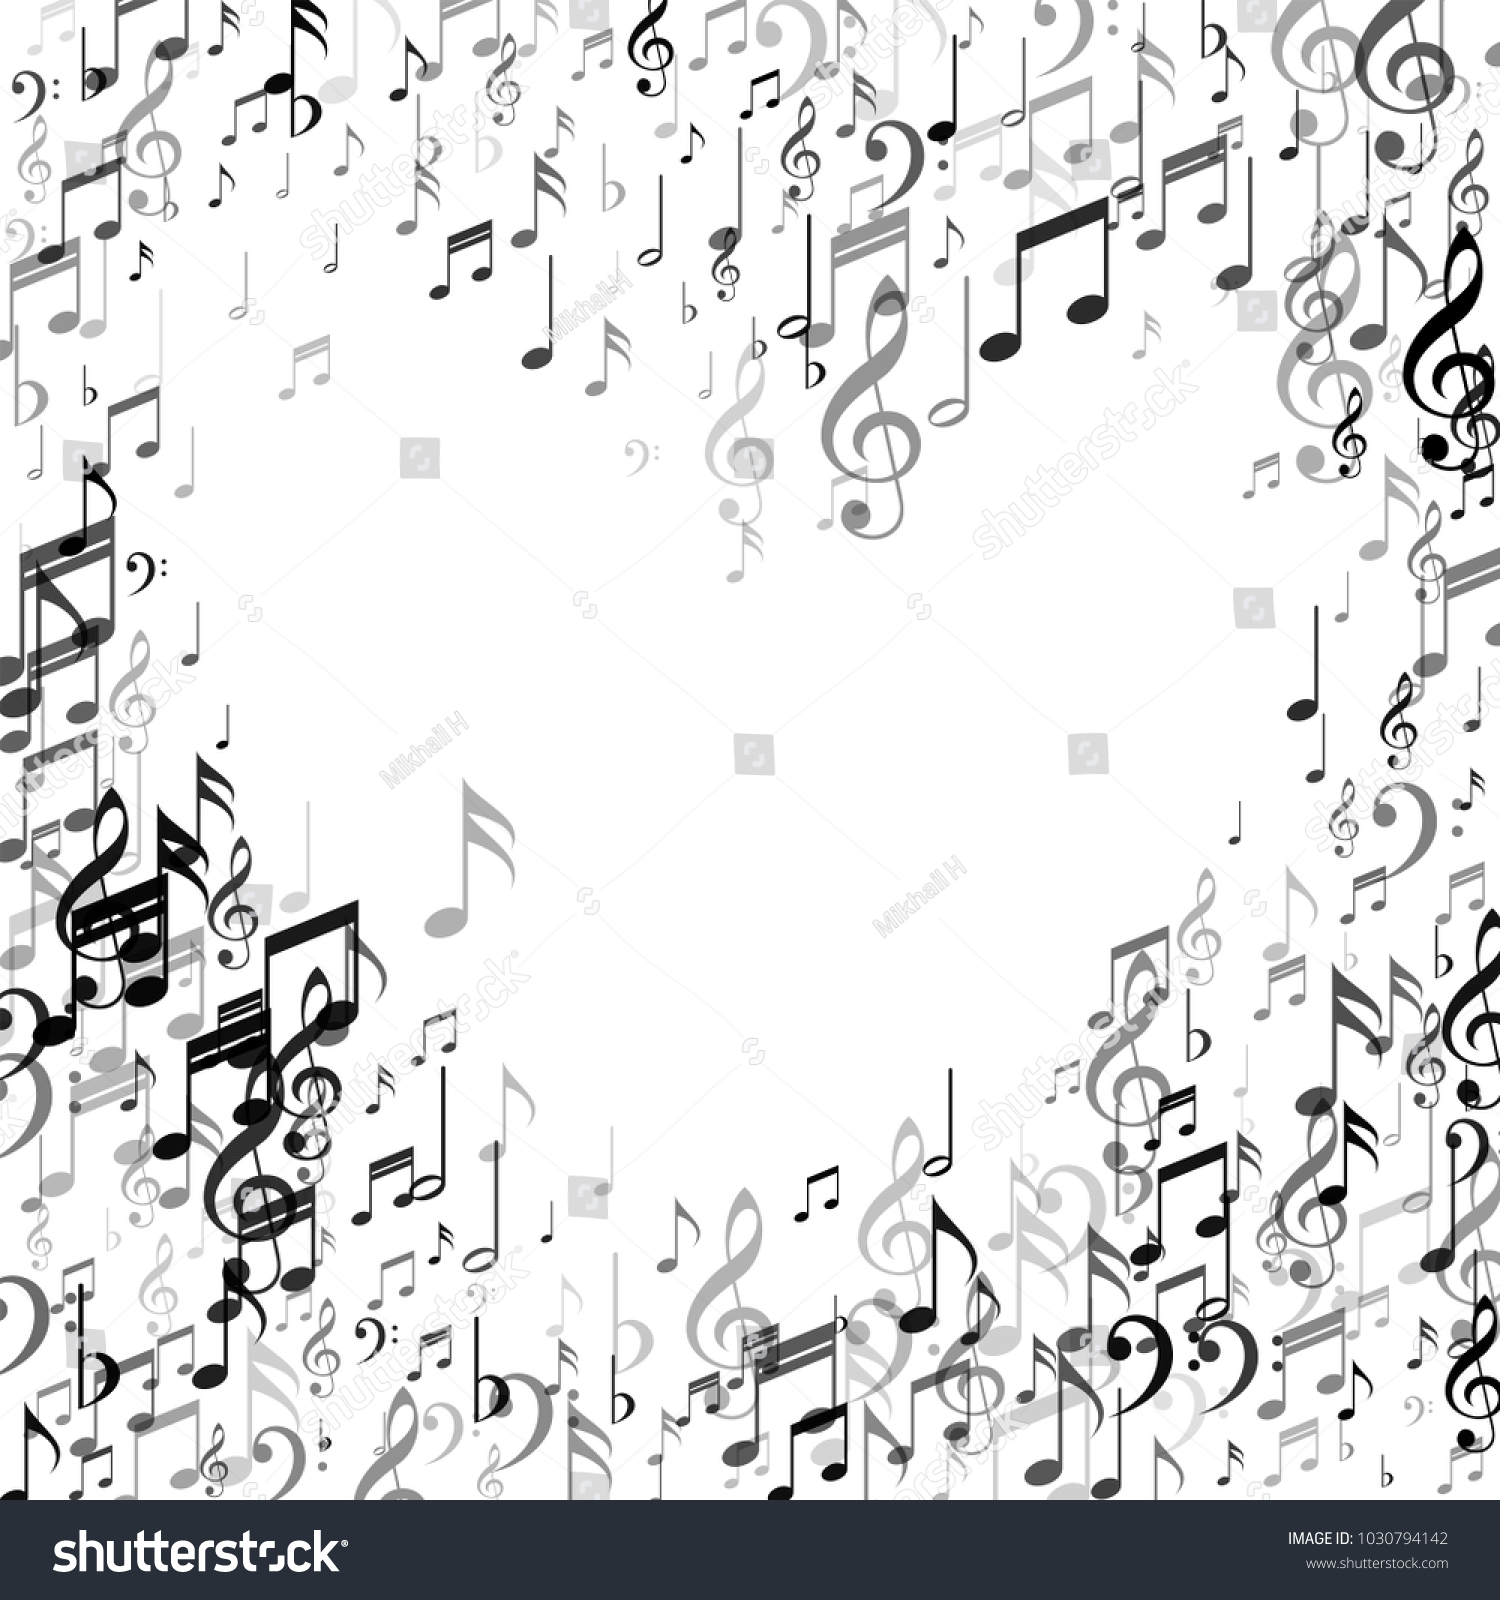 Heart Of Music Note Signs And Symbols Music Fashion Pattern Design